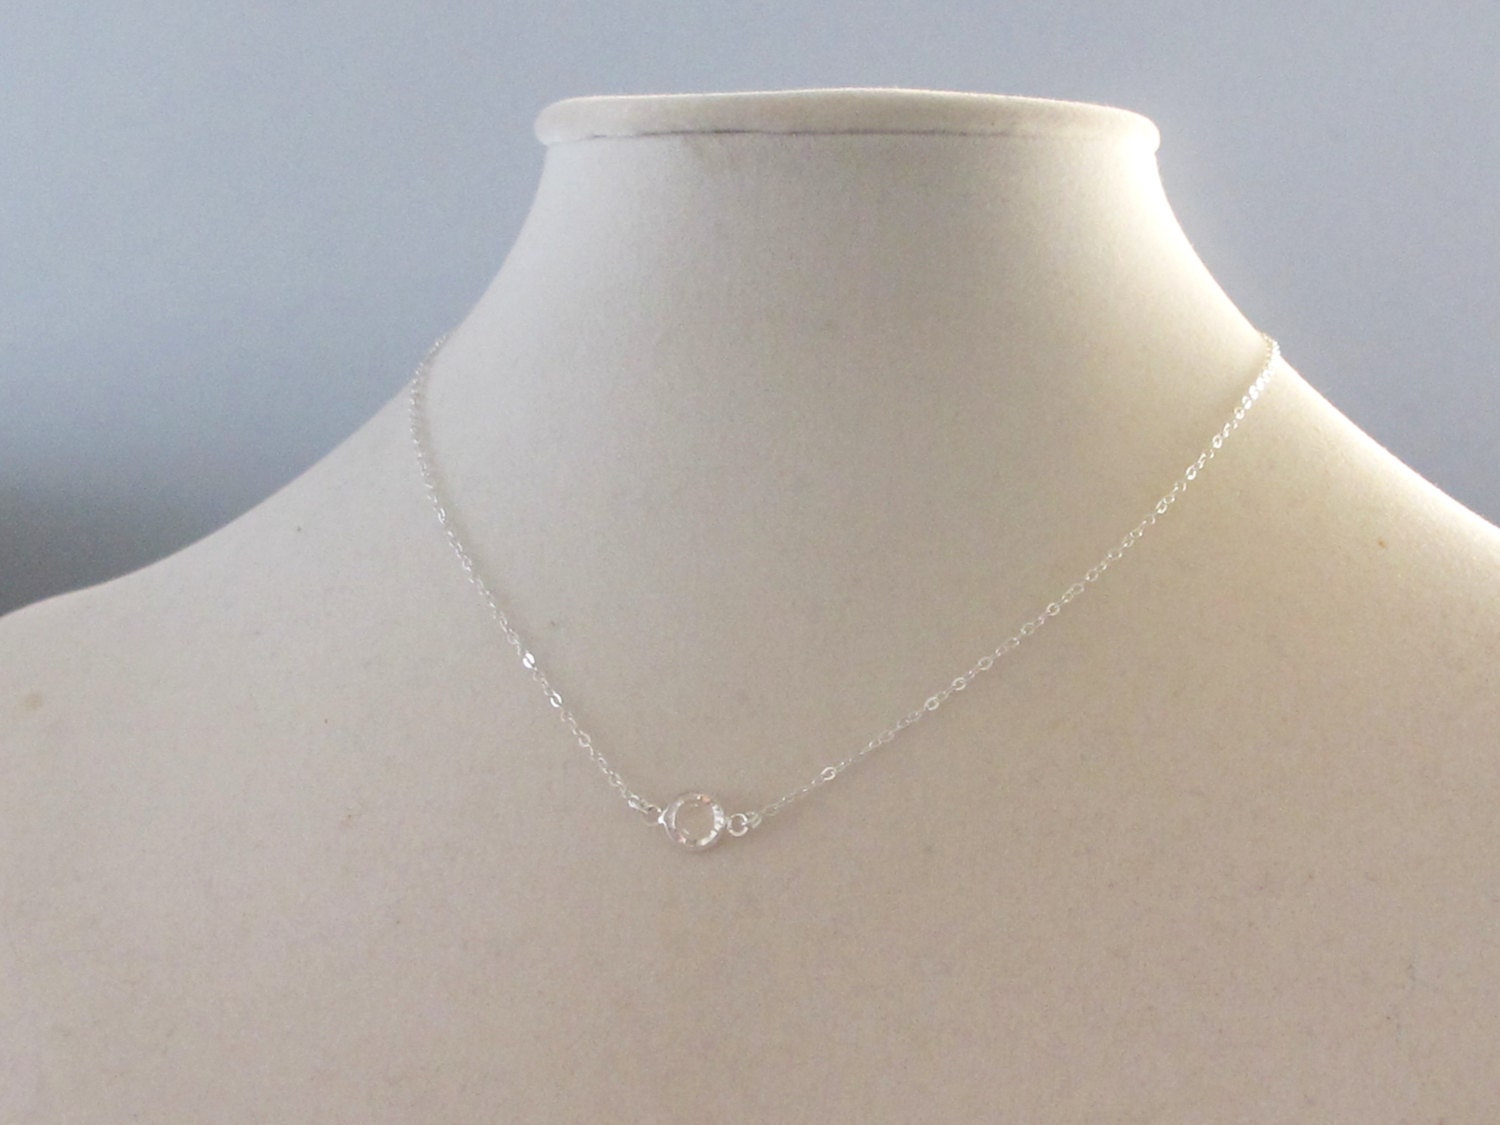 Swarovski crystal necklace solitaire necklace crystal zoom mozeypictures Image collections